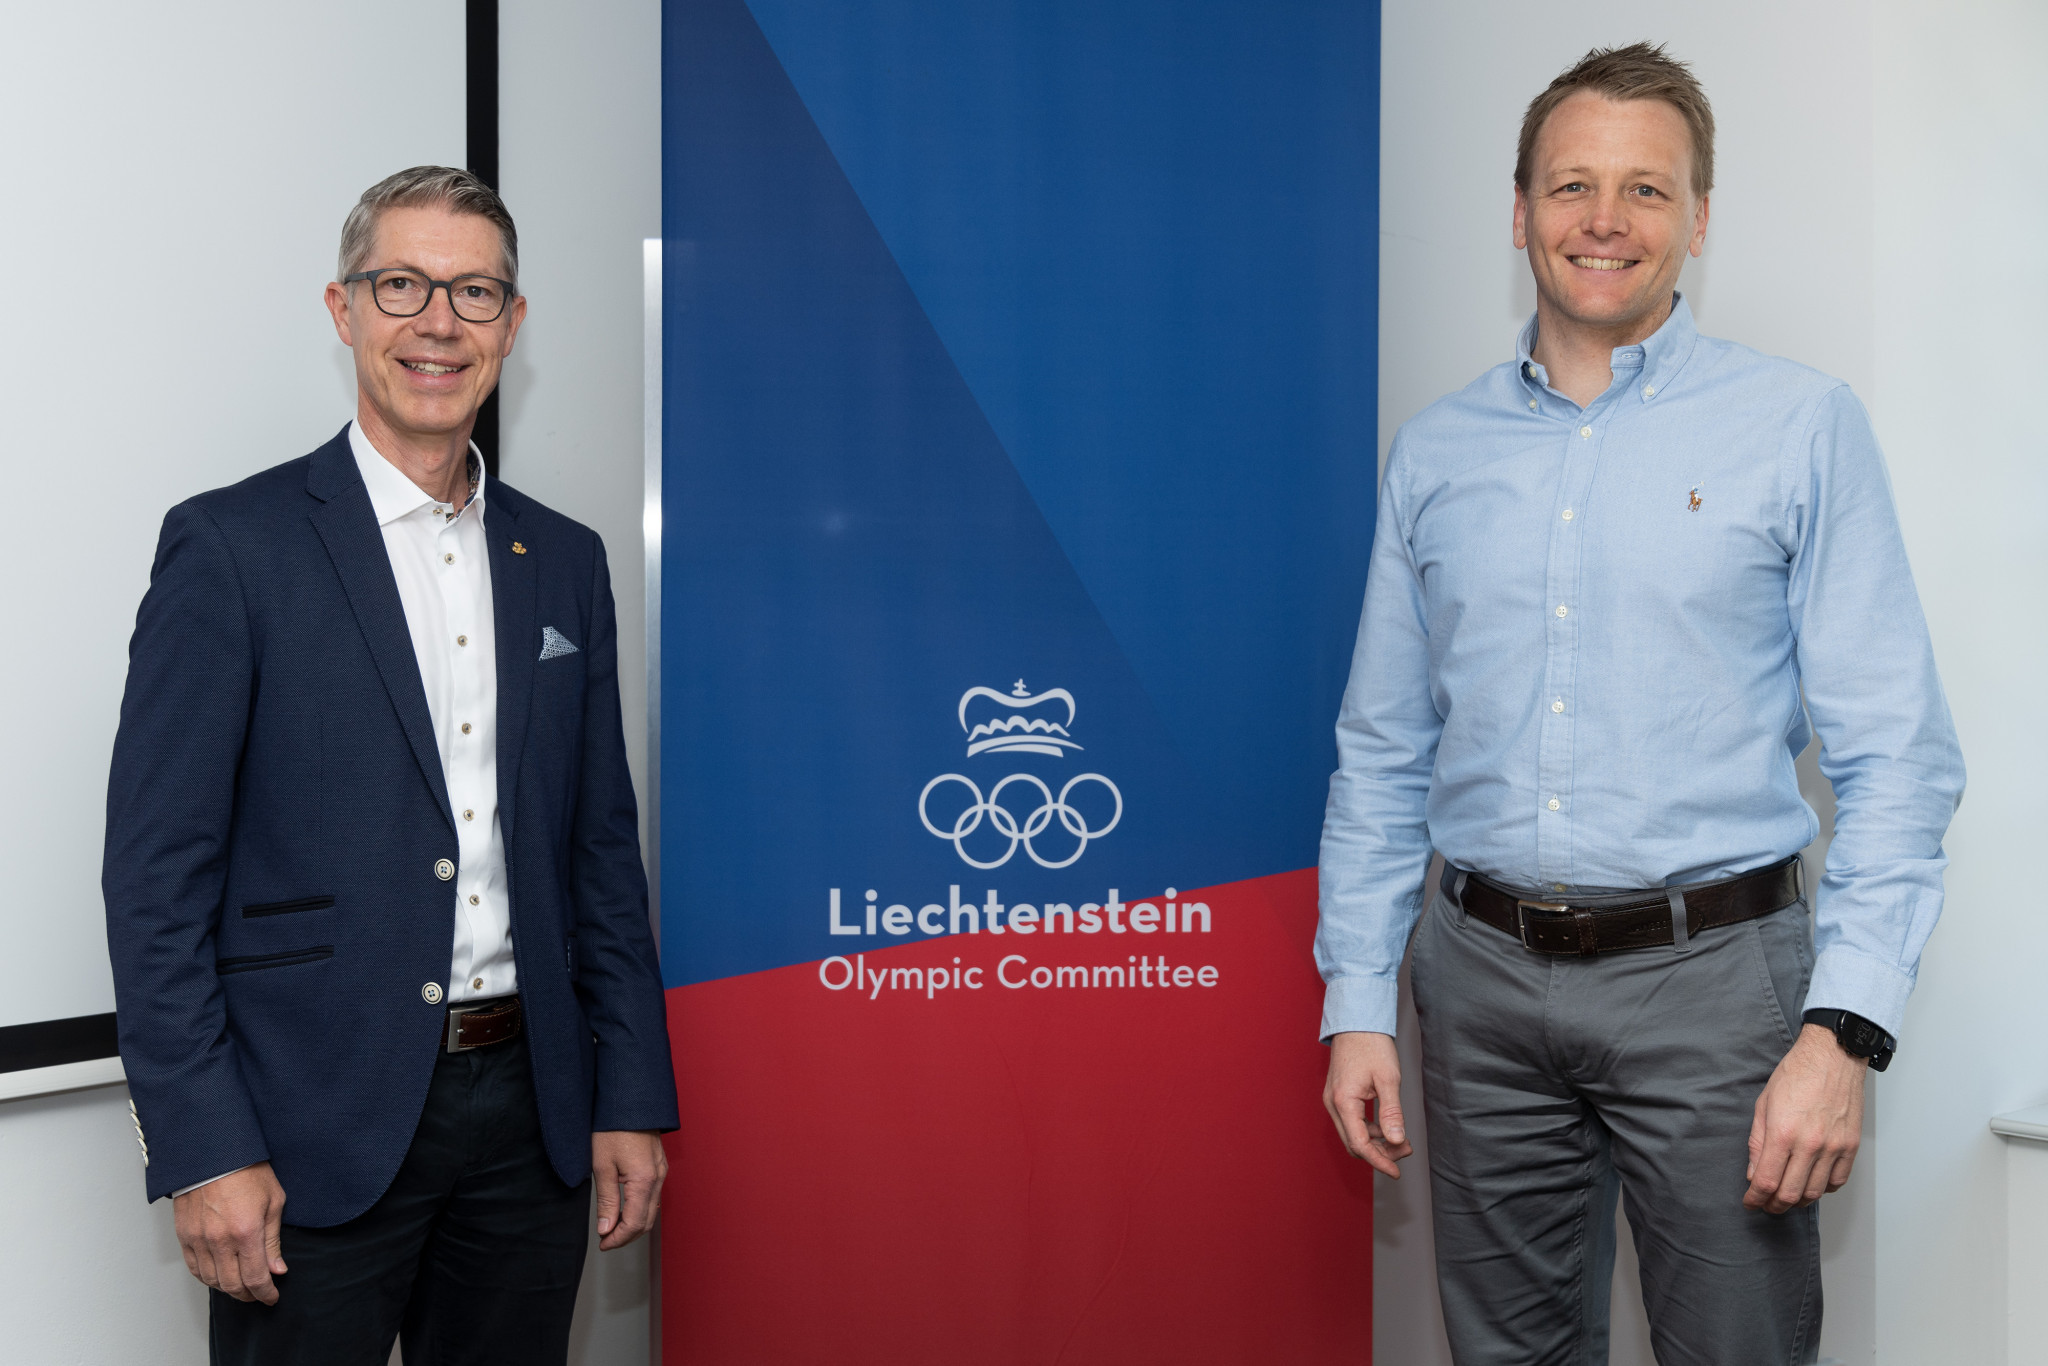 Liechtenstein Olympic Committee focuses on being healthy, successful and sustainable as it launches new vision